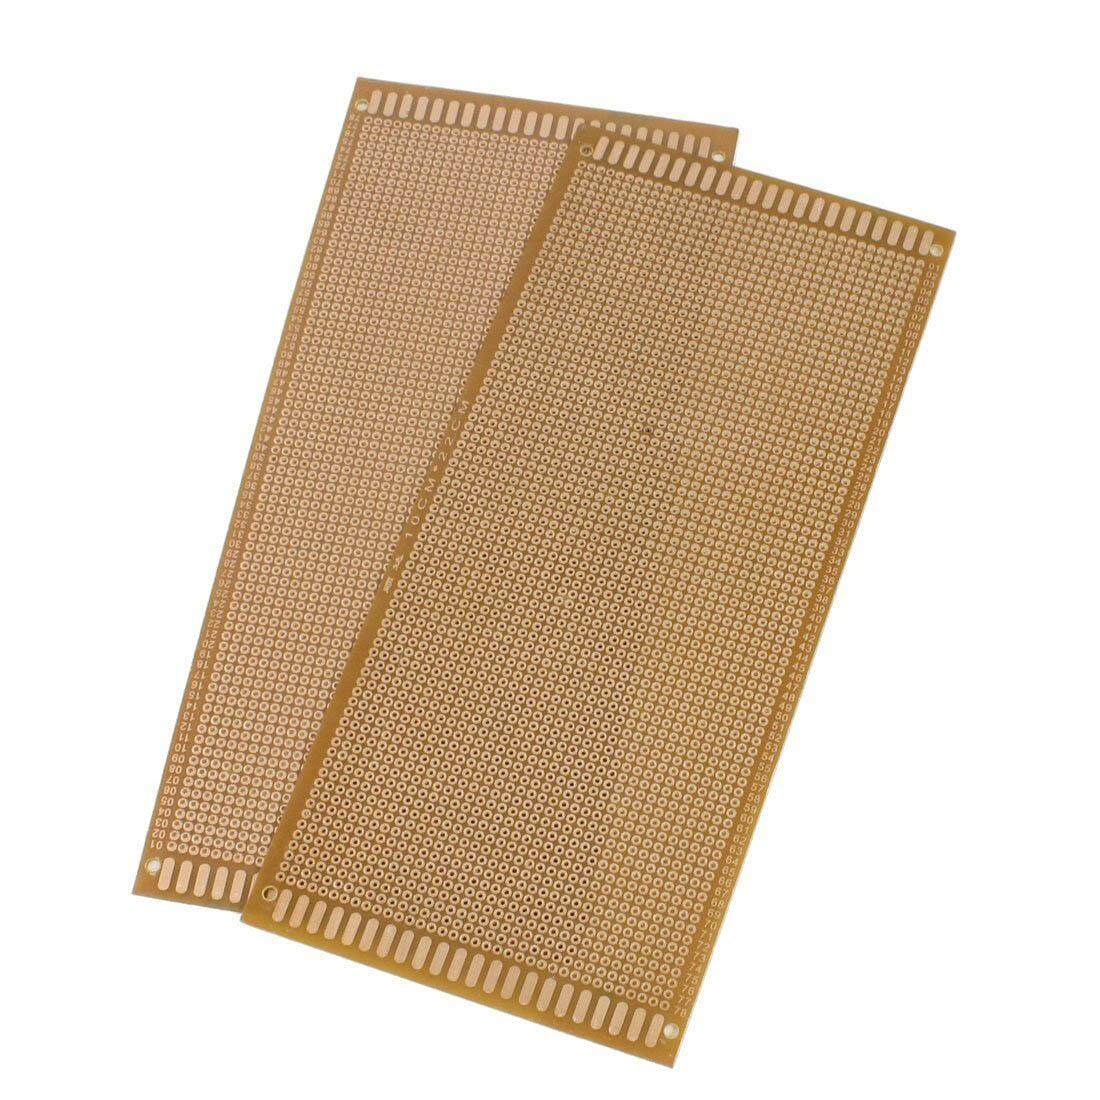 Sell Pcb Circuit Board Cheapest Best Quality My Store 12 Pcs Kit Prototyping Printed Stripboard Prototype Myr 25